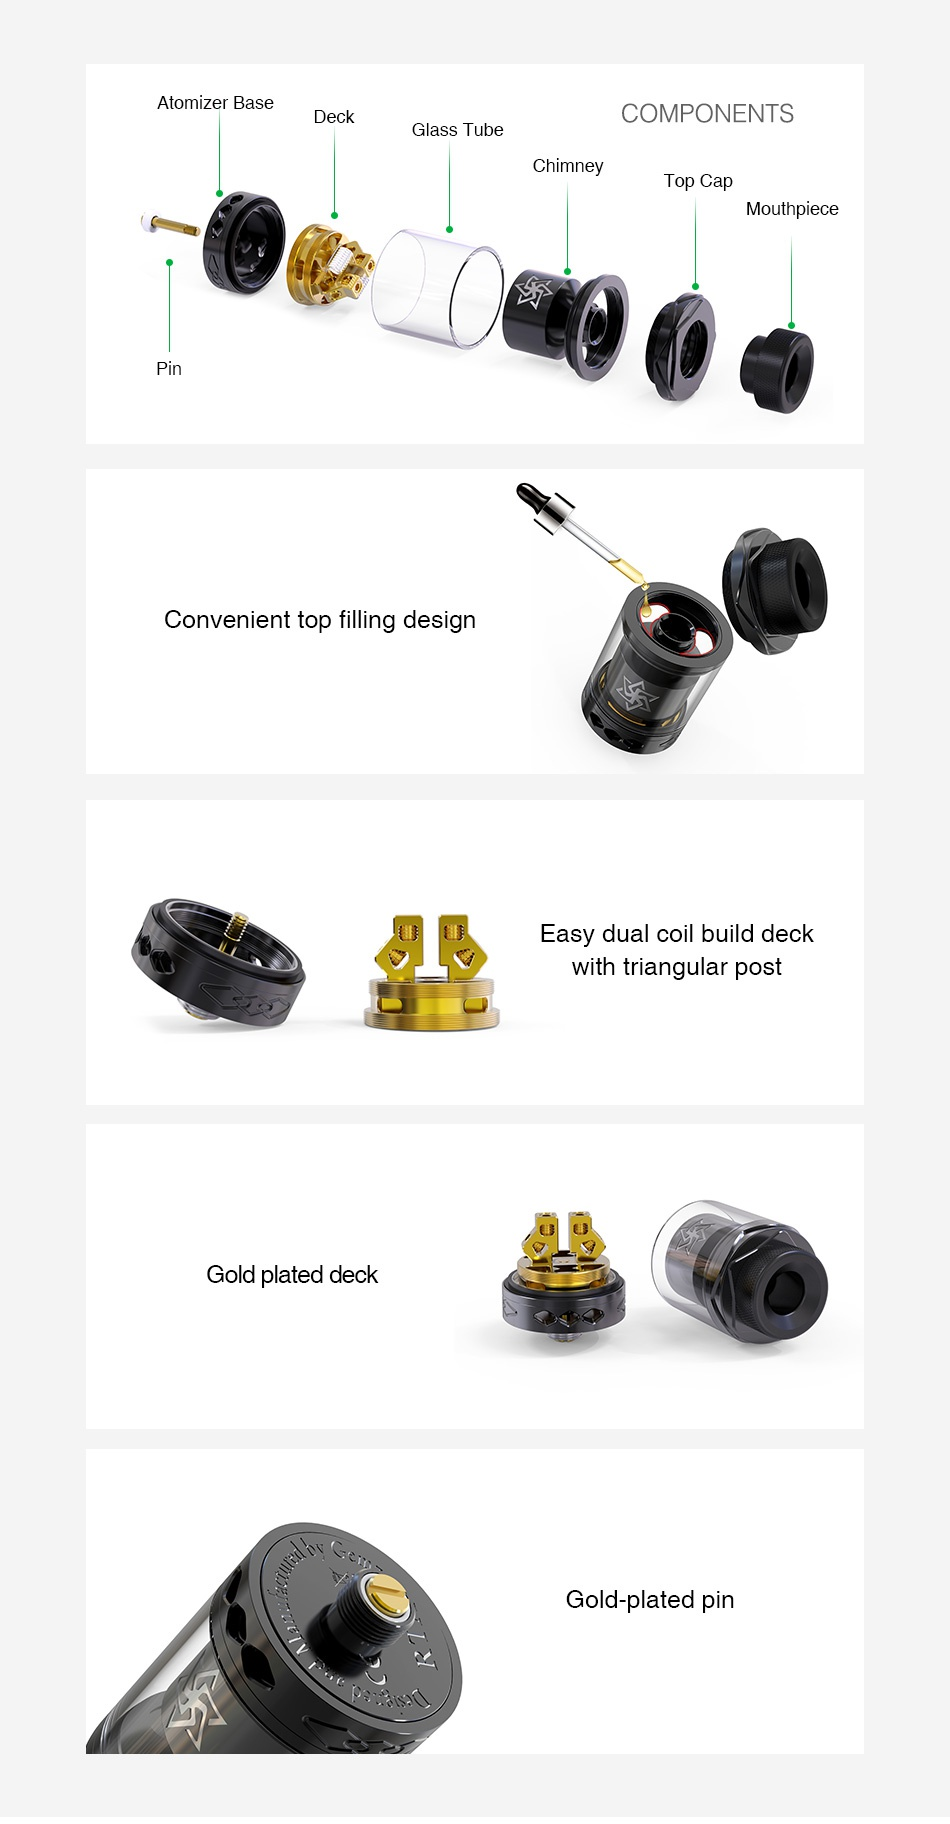 Gemz Lucky Star 2 RTA 2ml/4ml Atomizer base Deck COMPONENTS Glass tube Chimney Top Cap Mouthy Convenient top filling design Easy dual coil build deck With triangular post Gold plated deck Gold plated pin